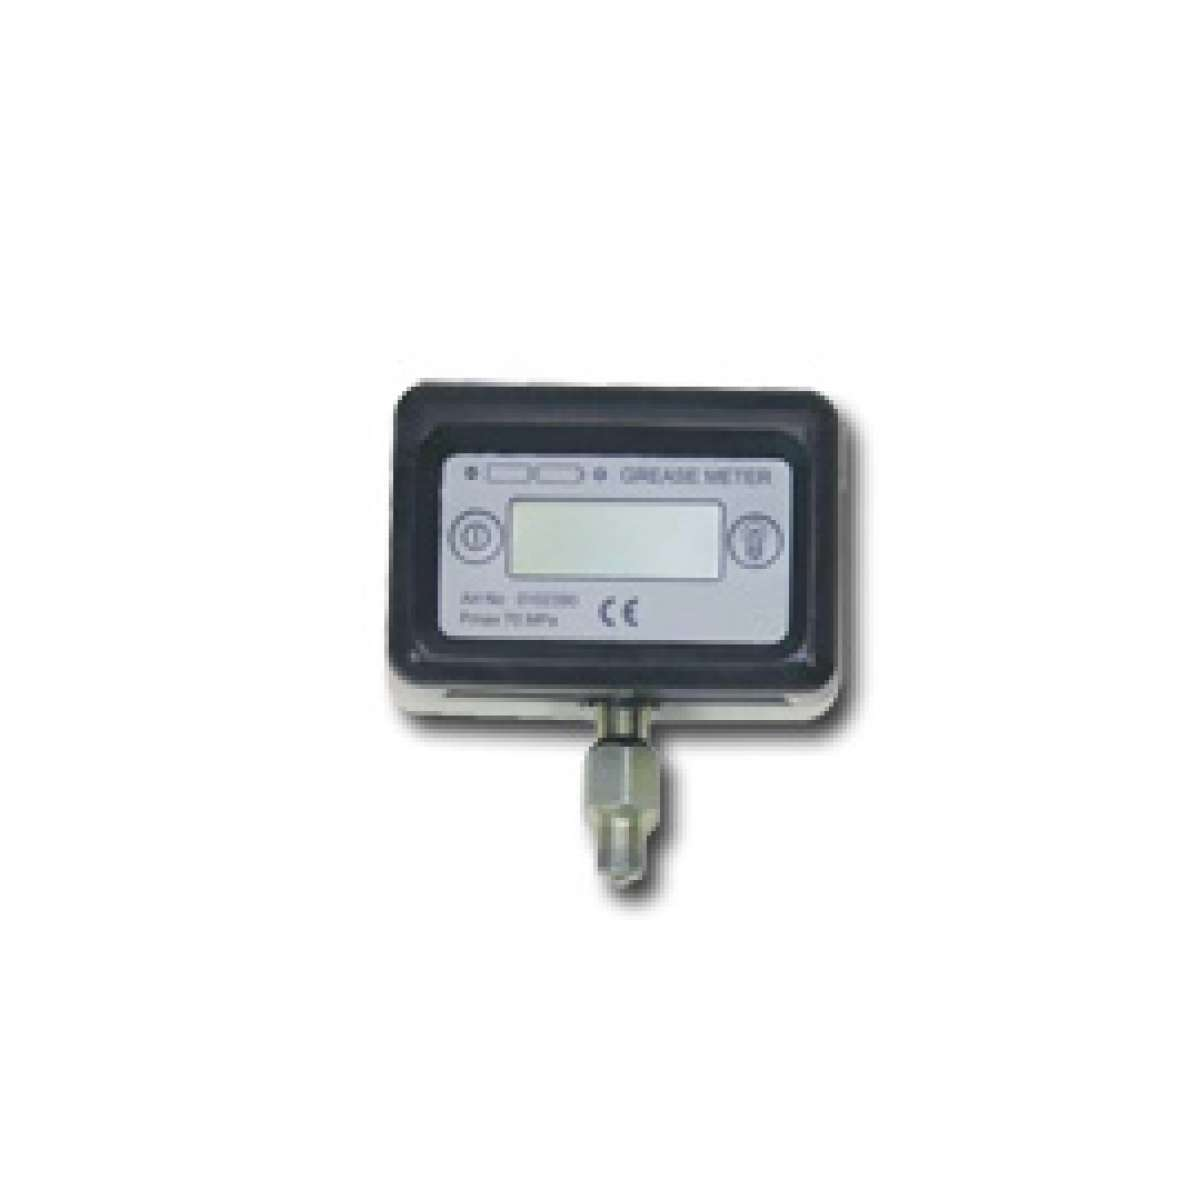 Digital Grease Meter